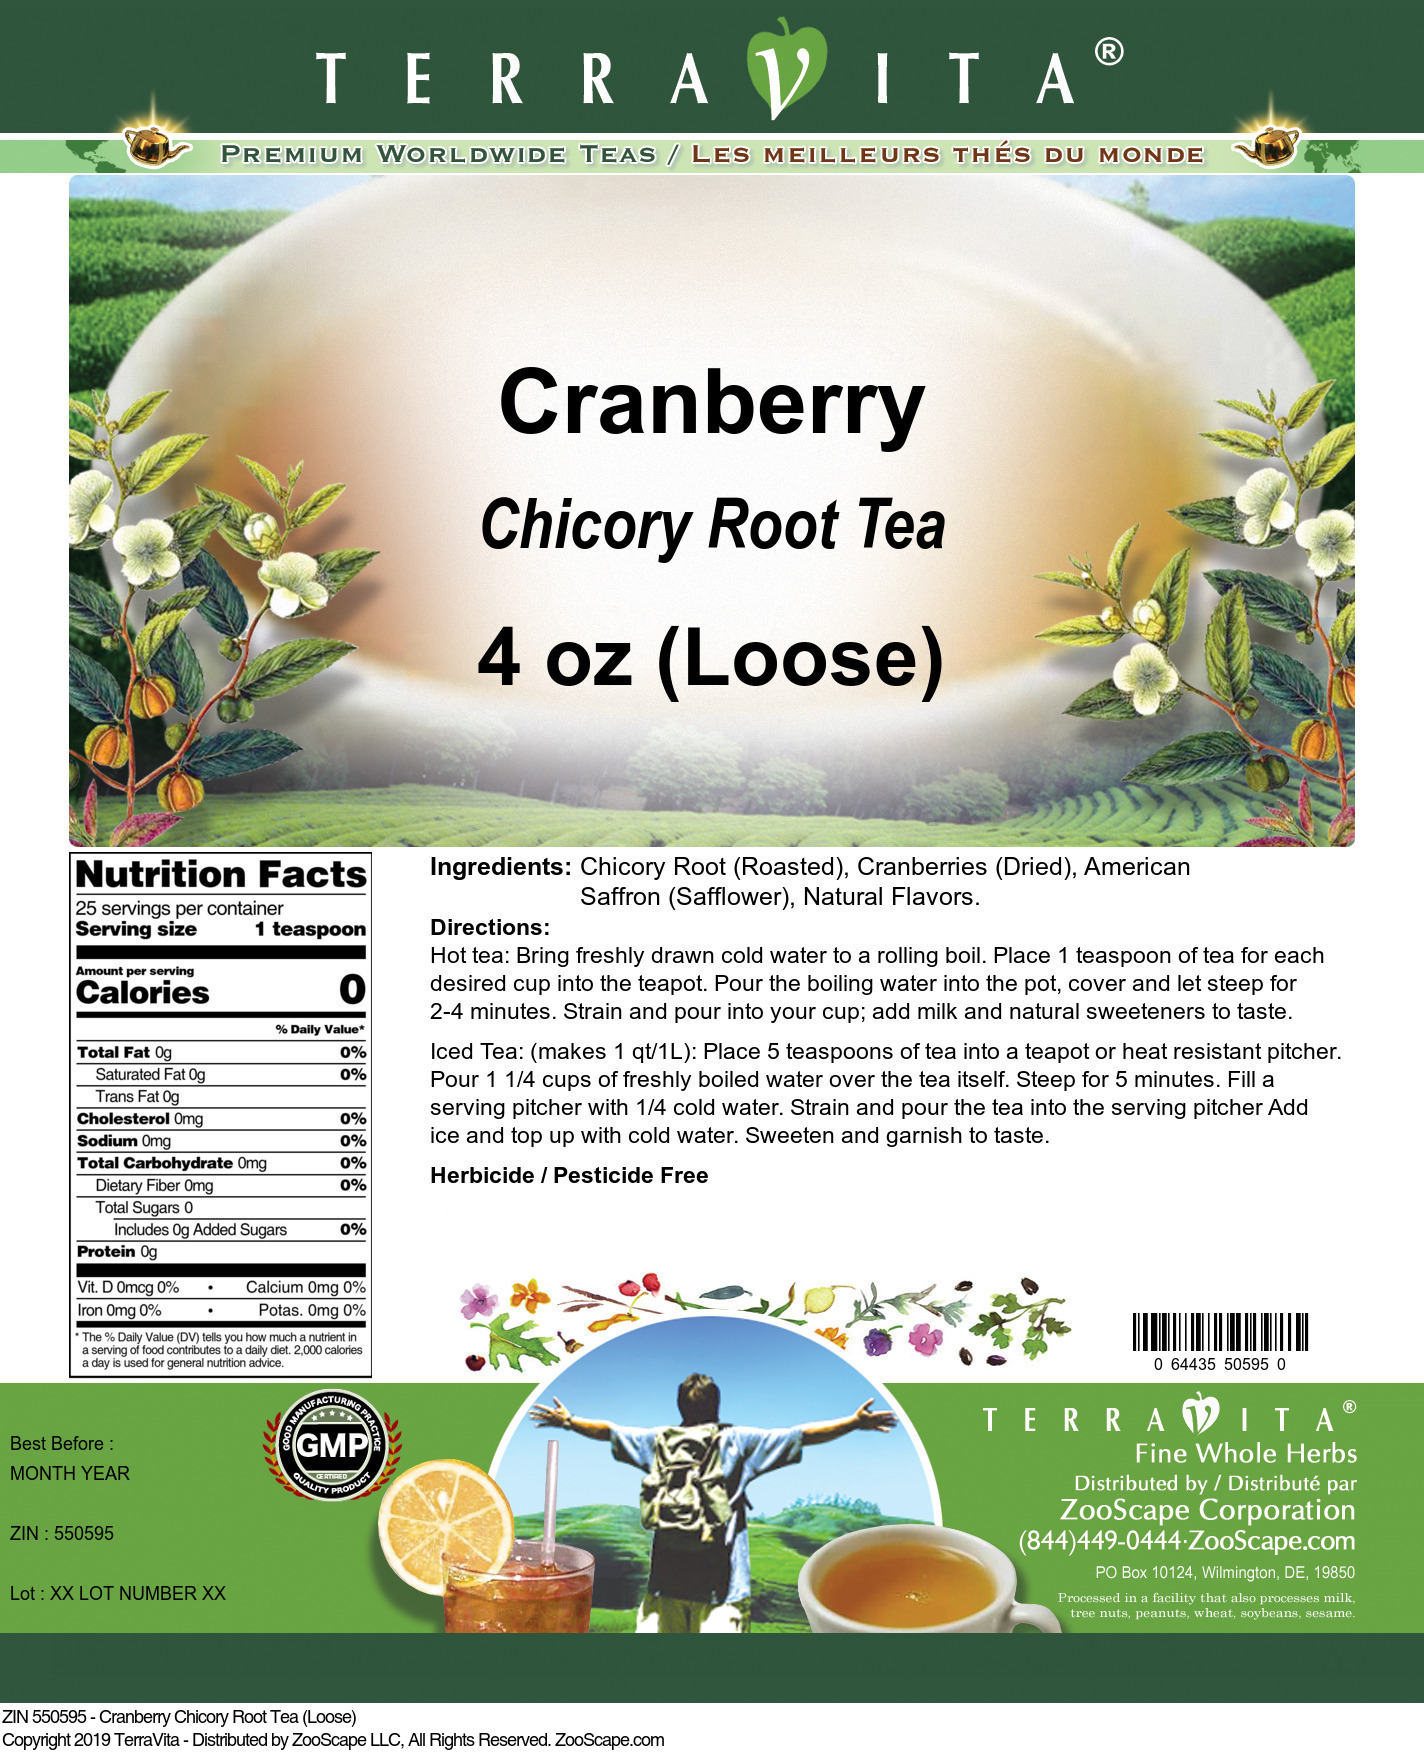 Cranberry Chicory Root Tea (Loose)